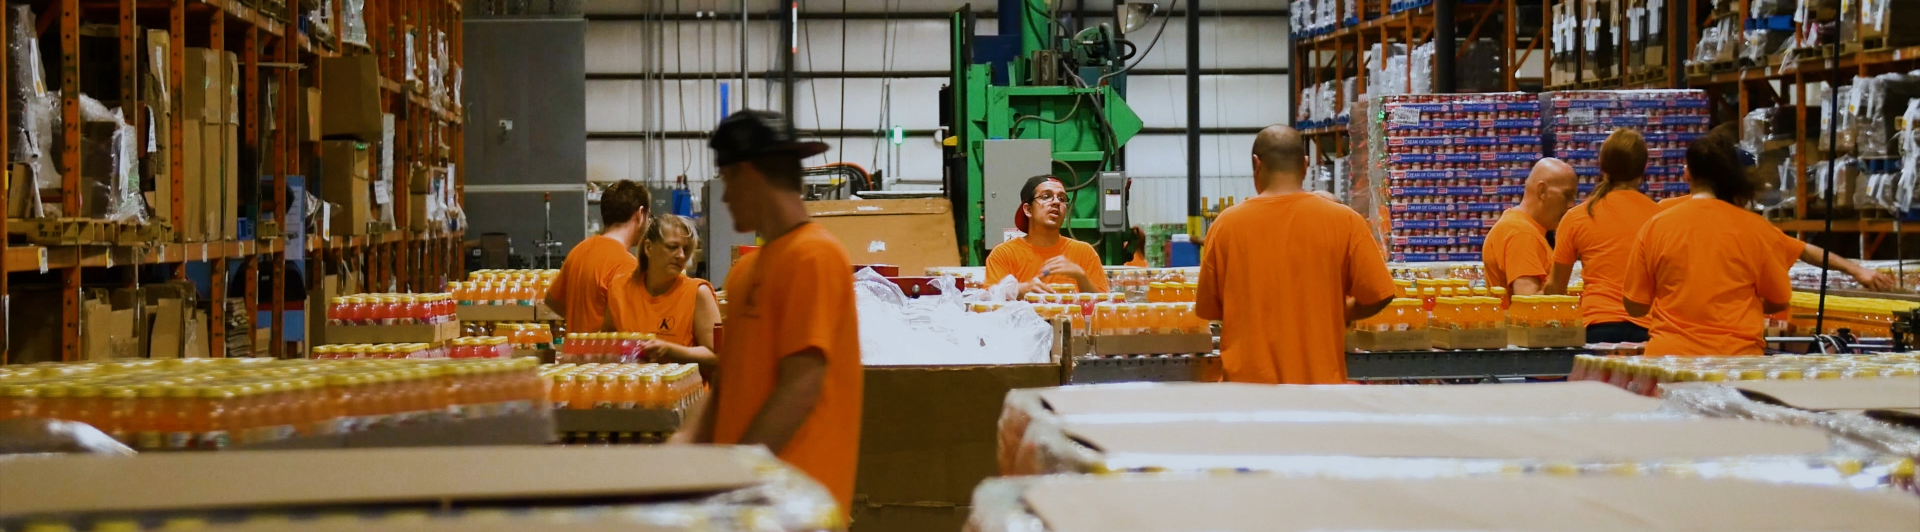 Workers at Packaging facility performing contract packaging services of bundling orange beverage bottles